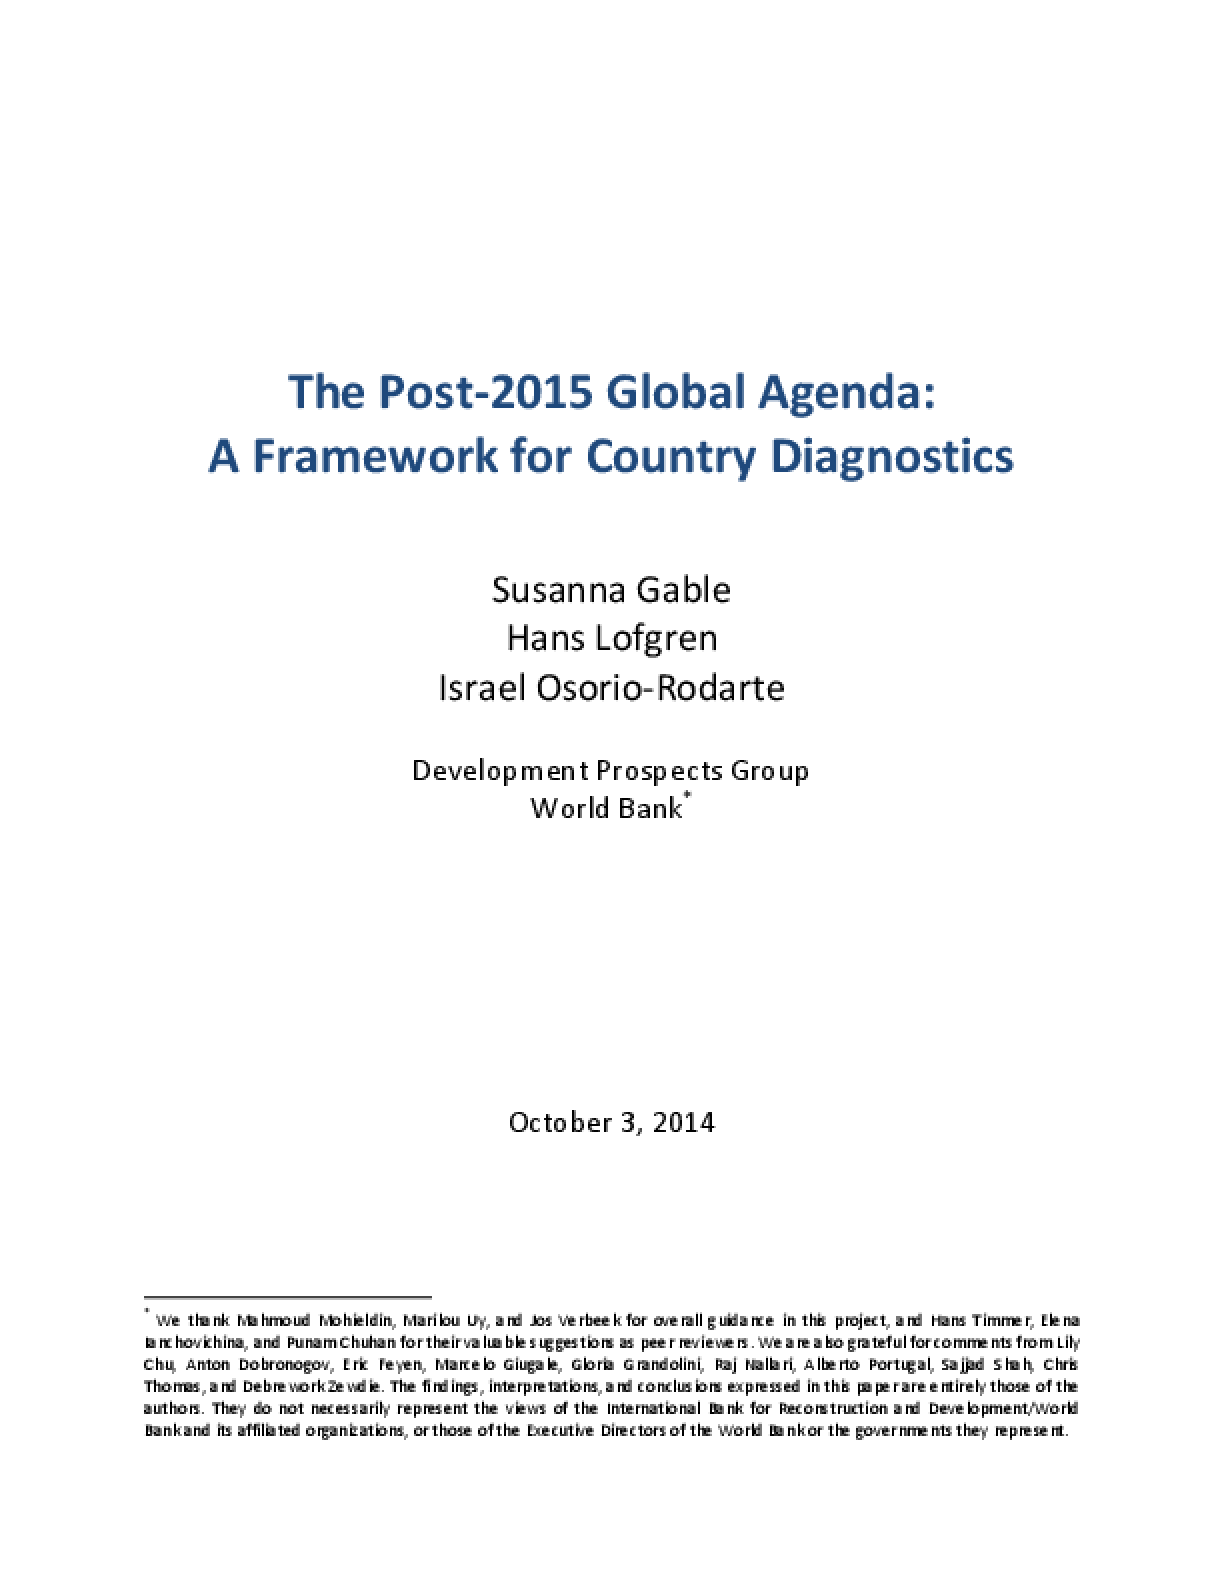 The Post-2015 Global Agenda: A Framework for Country Diagnostics